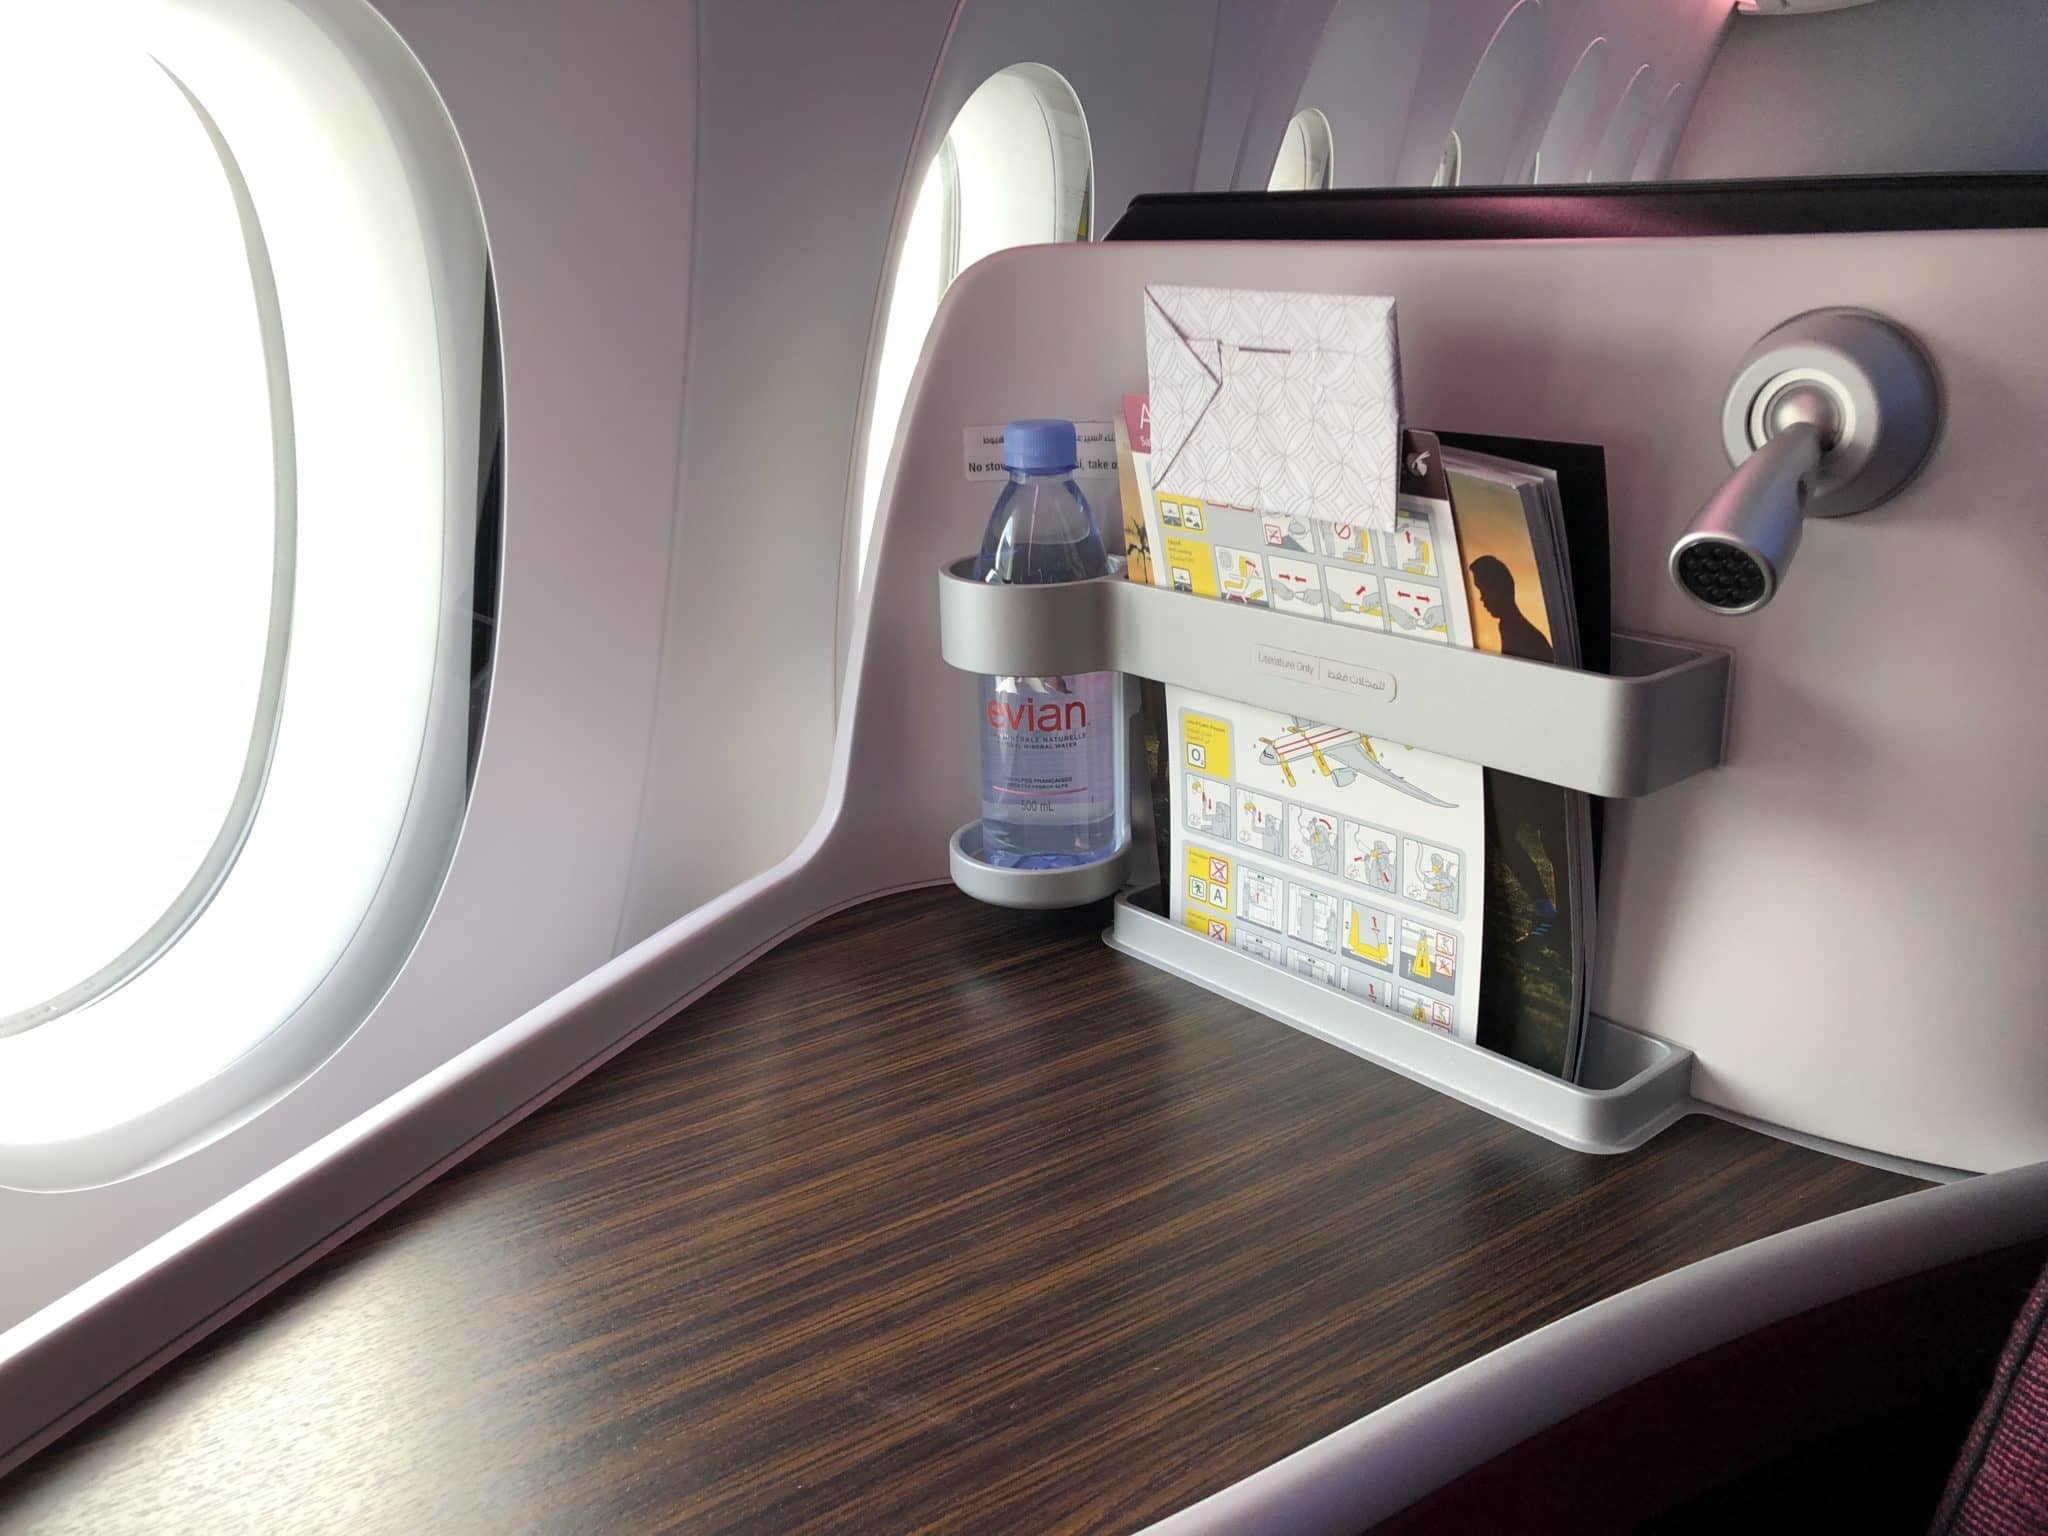 Qatar Airways Business Class A380 Amenity Leselampe Wasserflasche